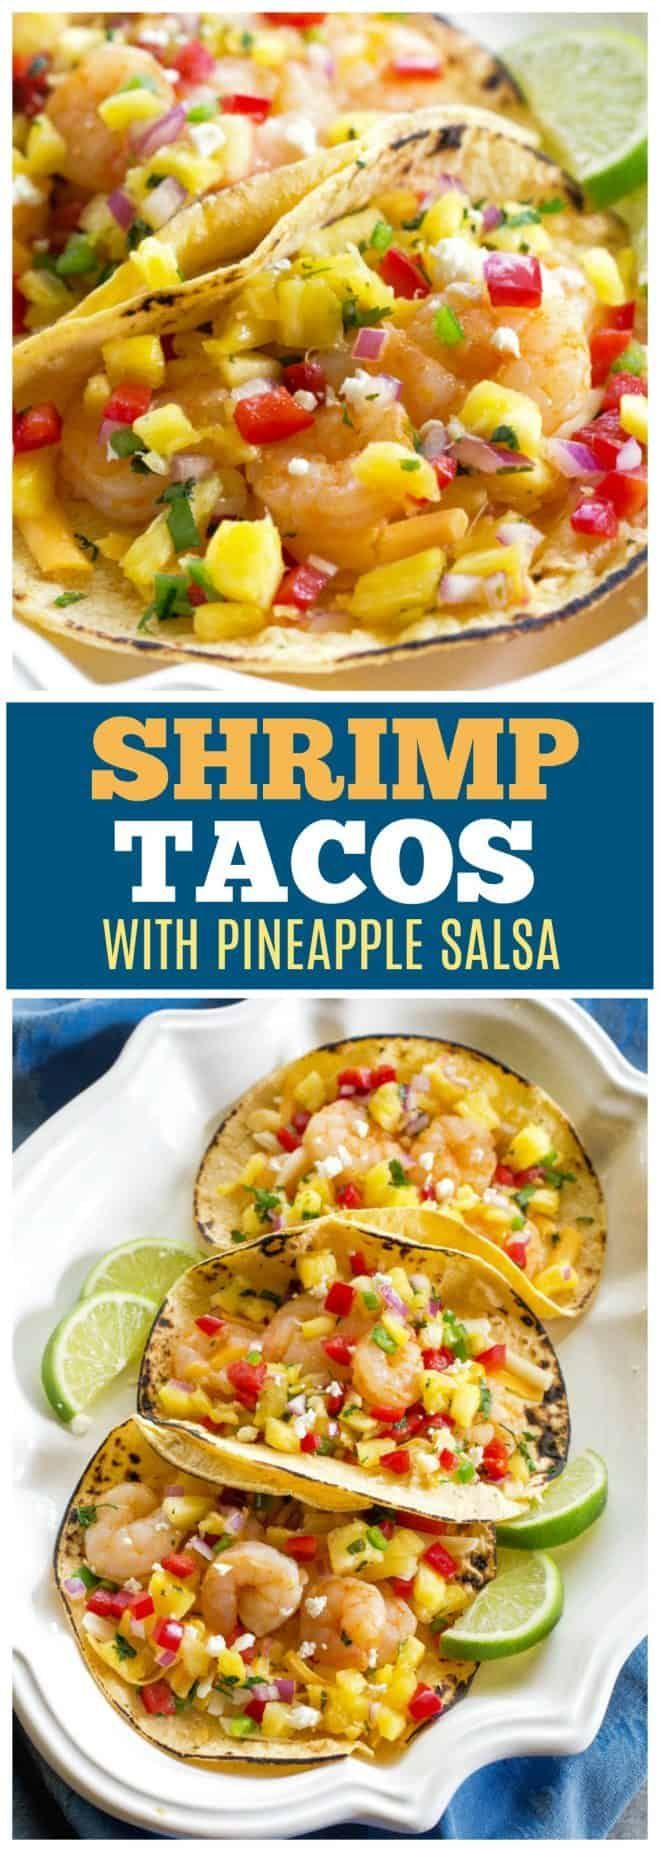 Shrimp Tacos with Pineapple Salsa - The Girl Who Ate Everything #shrimptacorecipes